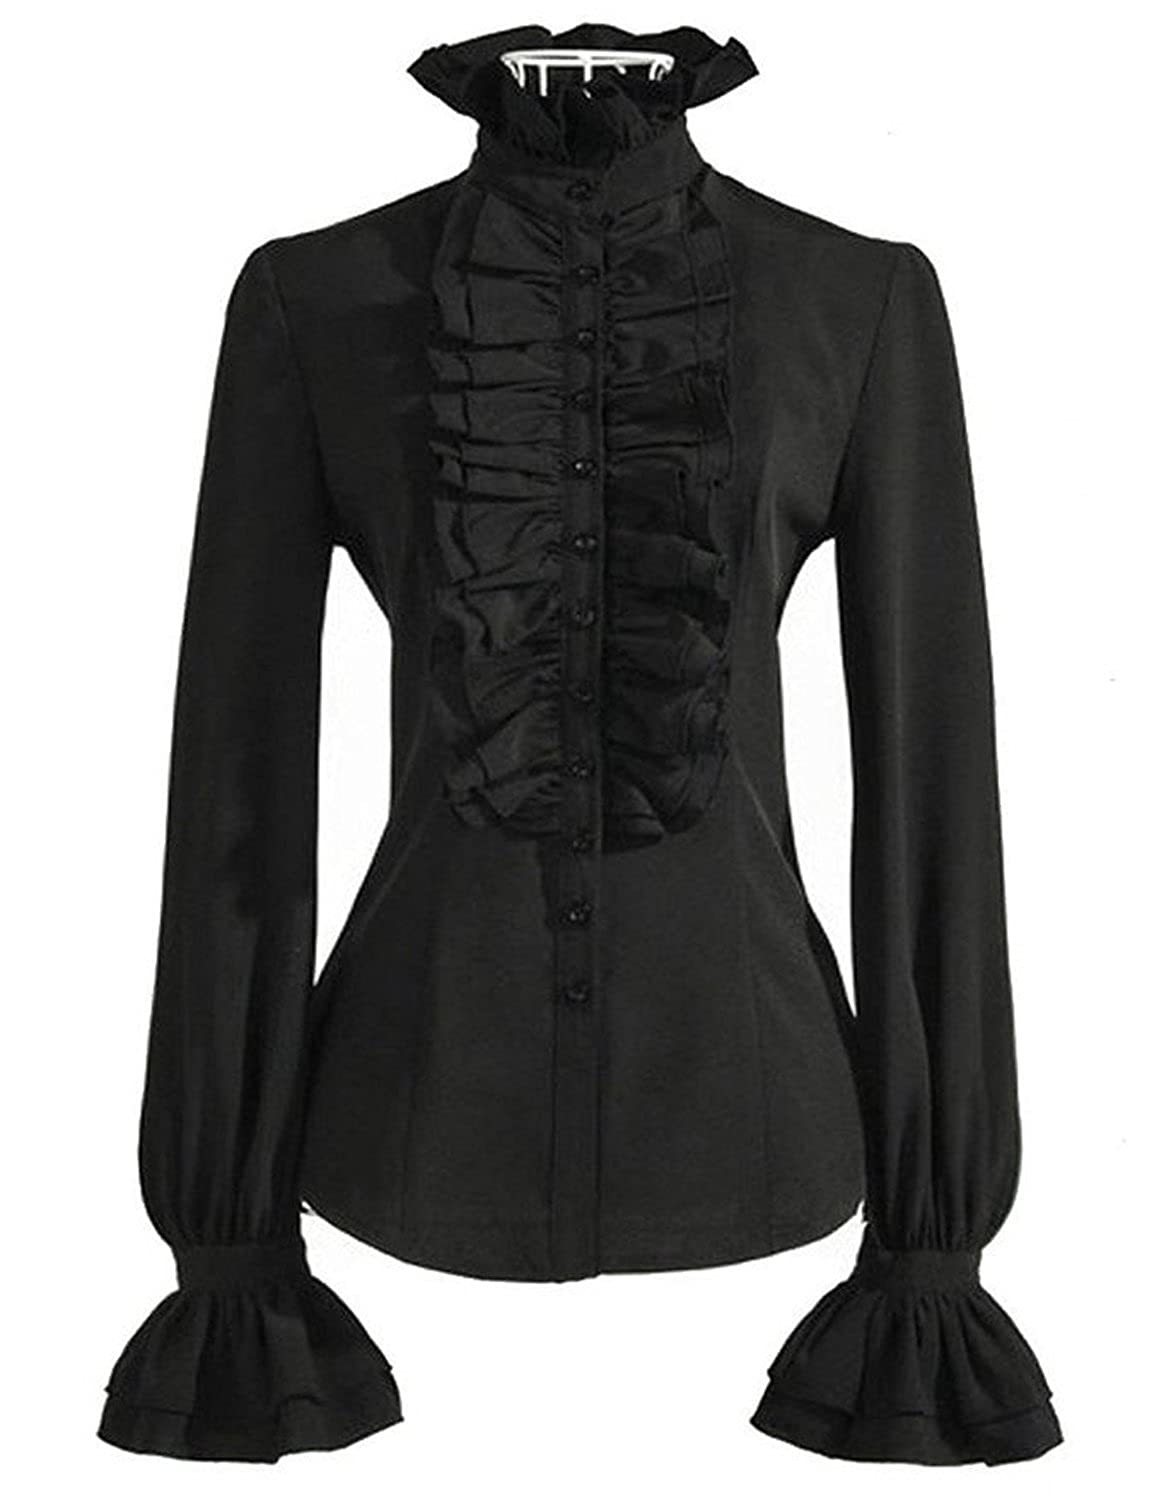 Edwardian Costumes – Cheap Halloween Costumes Stand-Up Collar Lotus Ruffle Shirts Blouse $21.99 AT vintagedancer.com